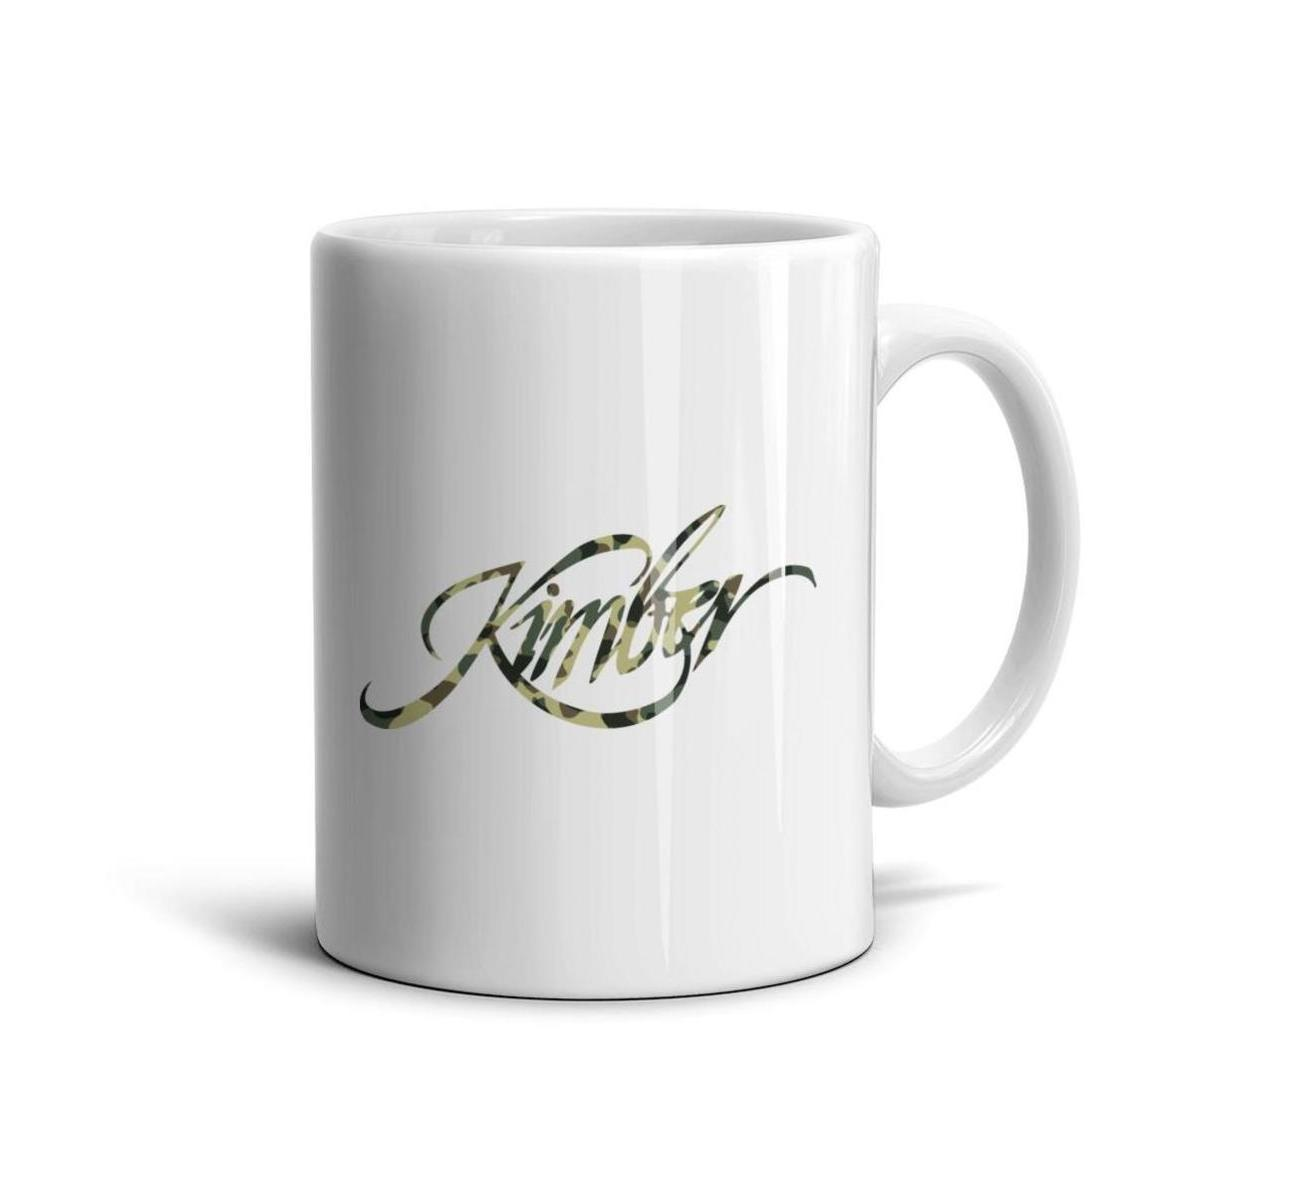 White Kimber Ceramic Mug Cute Simple Coffee Cup Souvenir Novelty Tea Mugs Kimber Logo Kimber 1911 Stainless Fitness Sniper Rifle Flag Pictures On Mugs Plain Black Coffee Mugs From Hotface 20 07 Dhgate Com